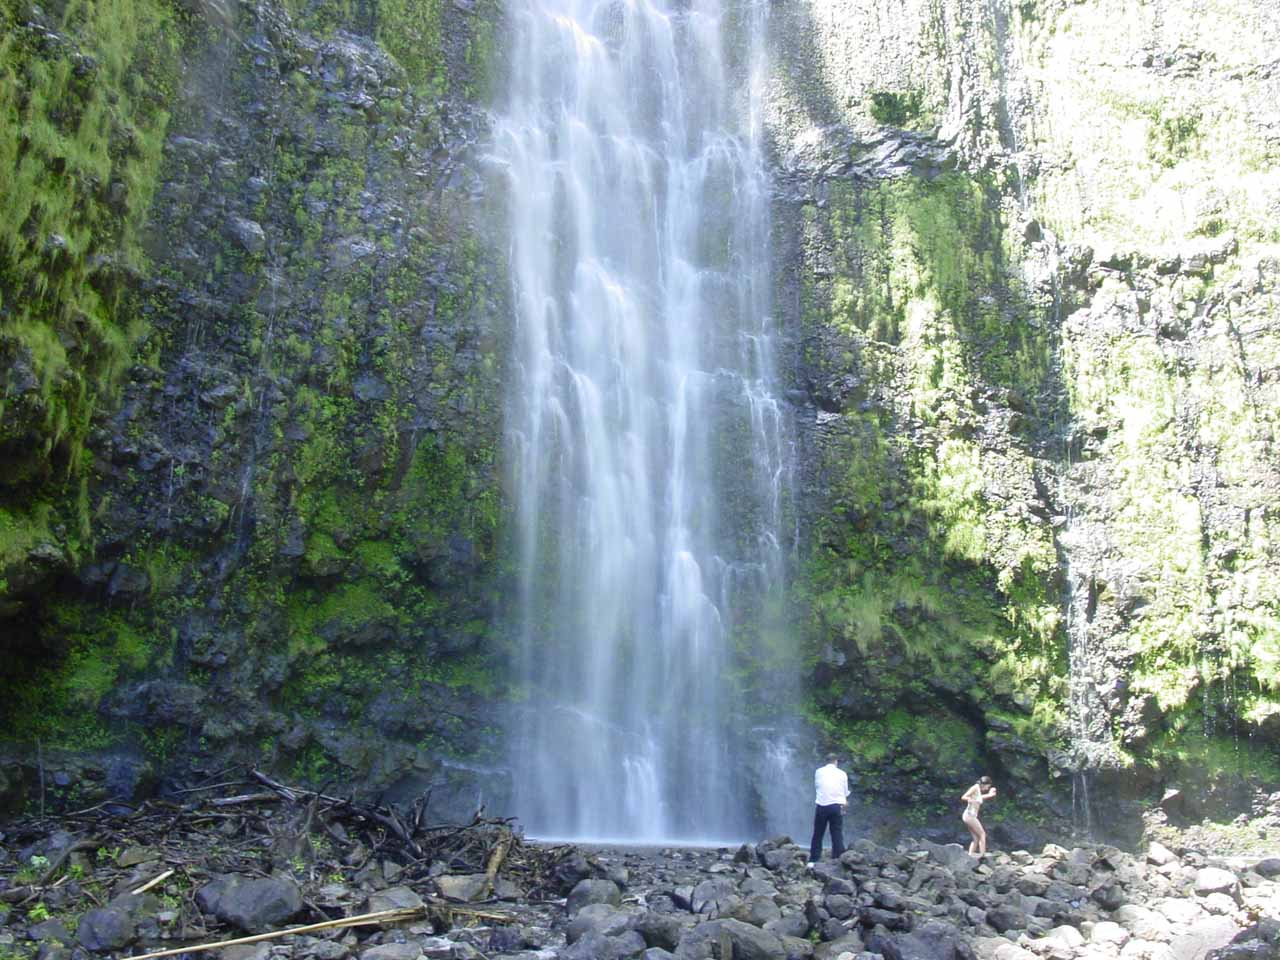 Some folks choosing to get wet beneath the falls despite Mother Nature telling them they're doing so at their own risk